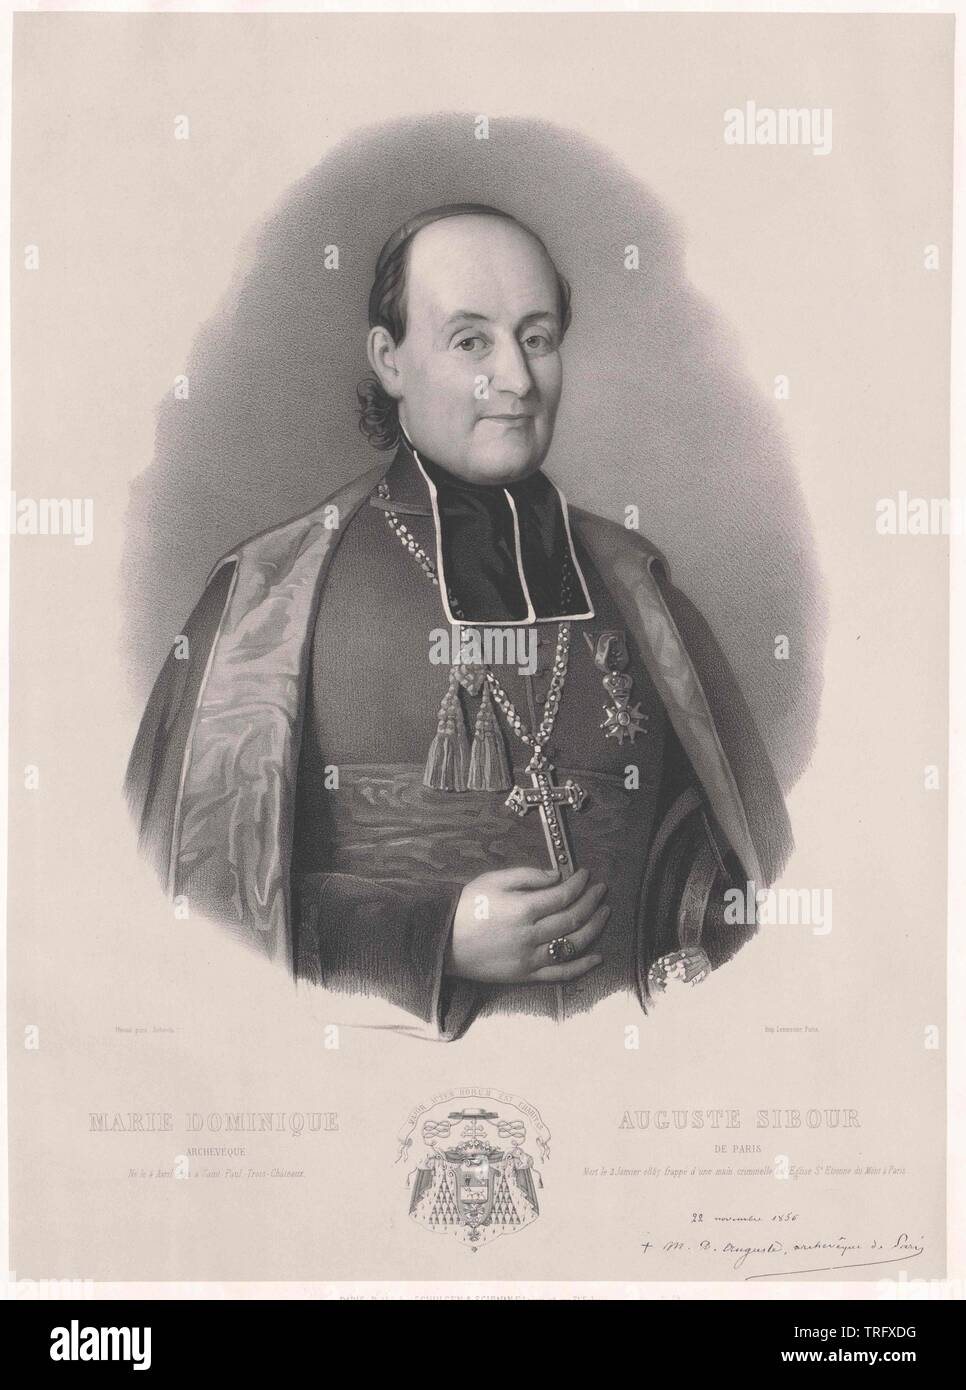 Sibour, Marie Dominique Auguste, archbishop of Paris, Additional-Rights-Clearance-Info-Not-Available - Stock Image